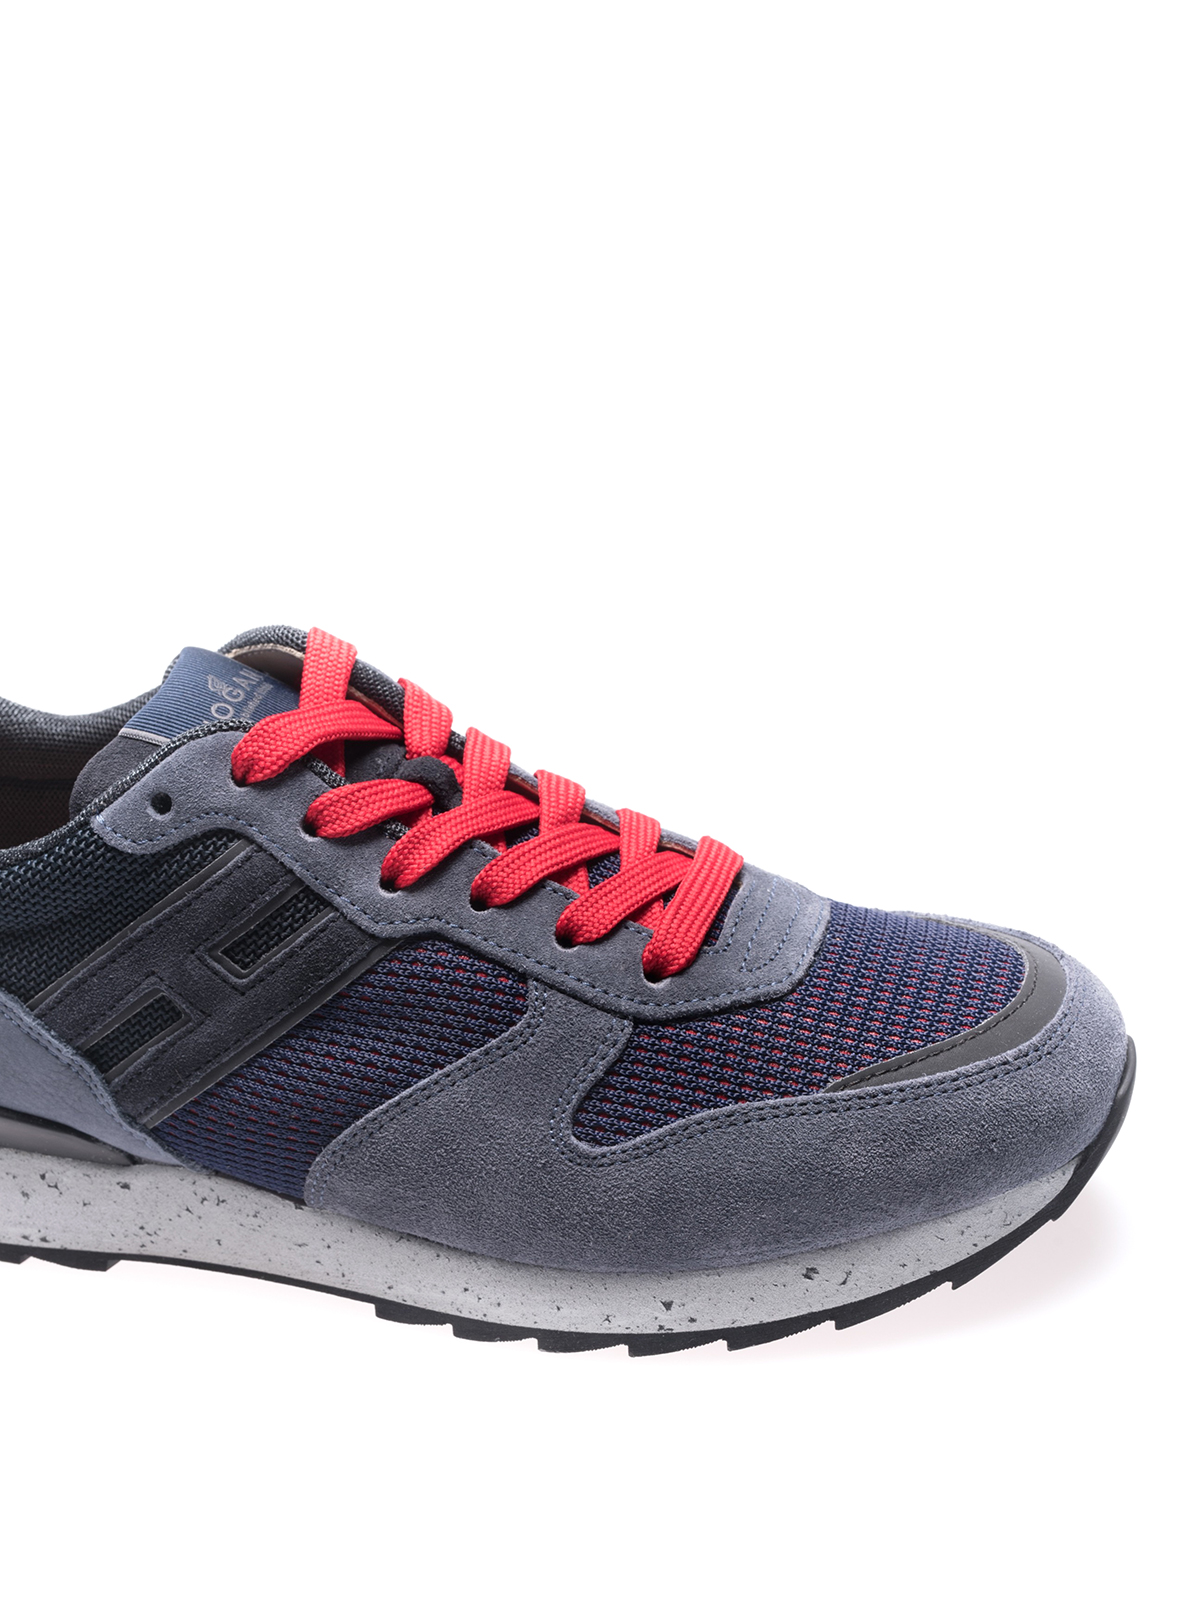 Hogan - R261 lace-up sneakers - trainers - HXM2610R676IHS0PD3 ...